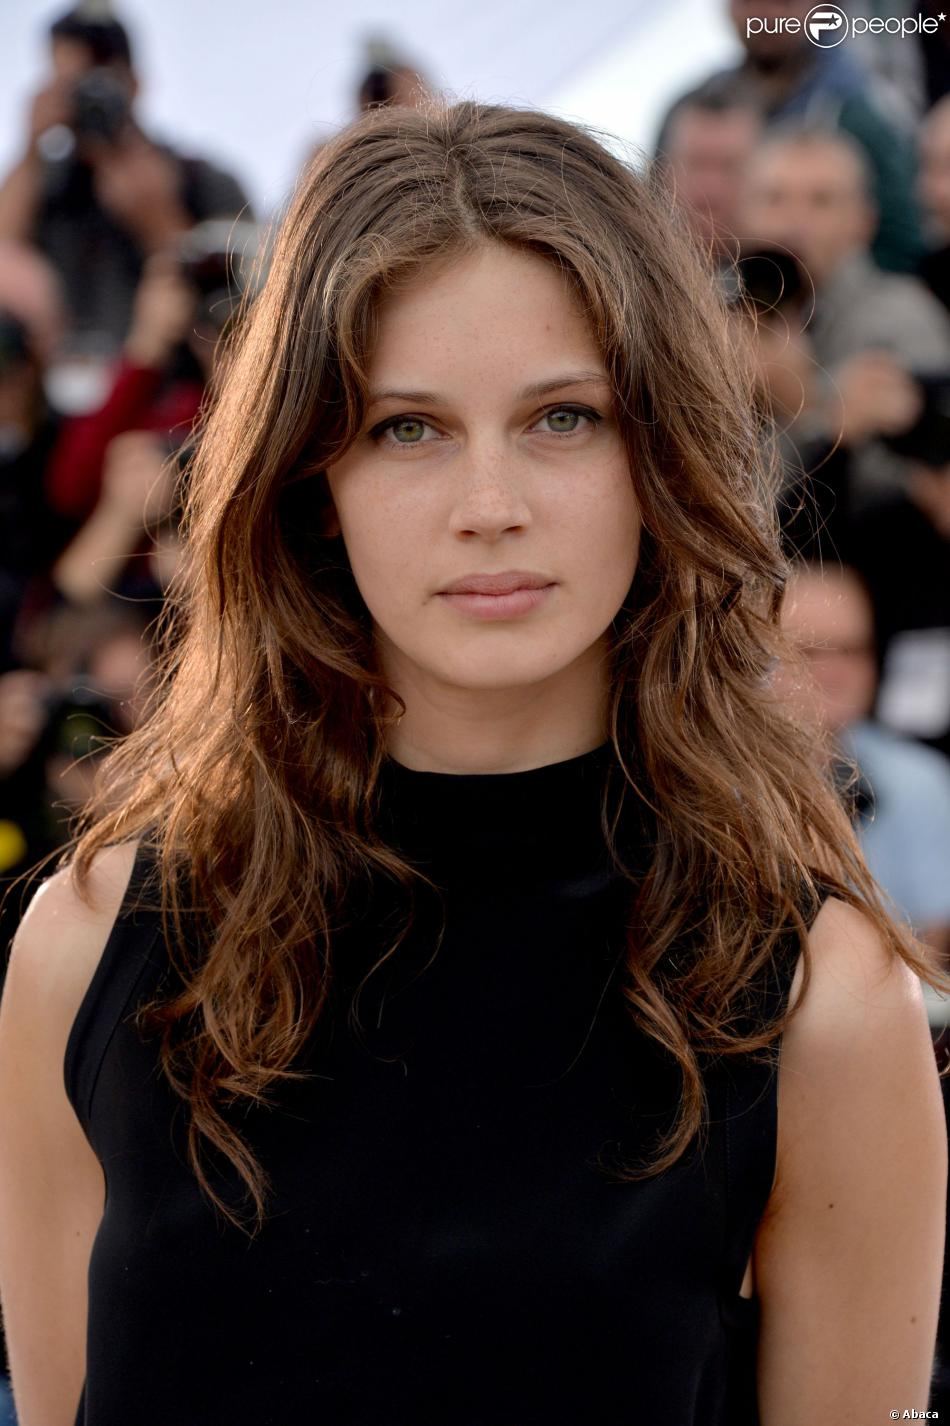 marine vacth la perle de jeune et jolie est amoureuse purepeople. Black Bedroom Furniture Sets. Home Design Ideas